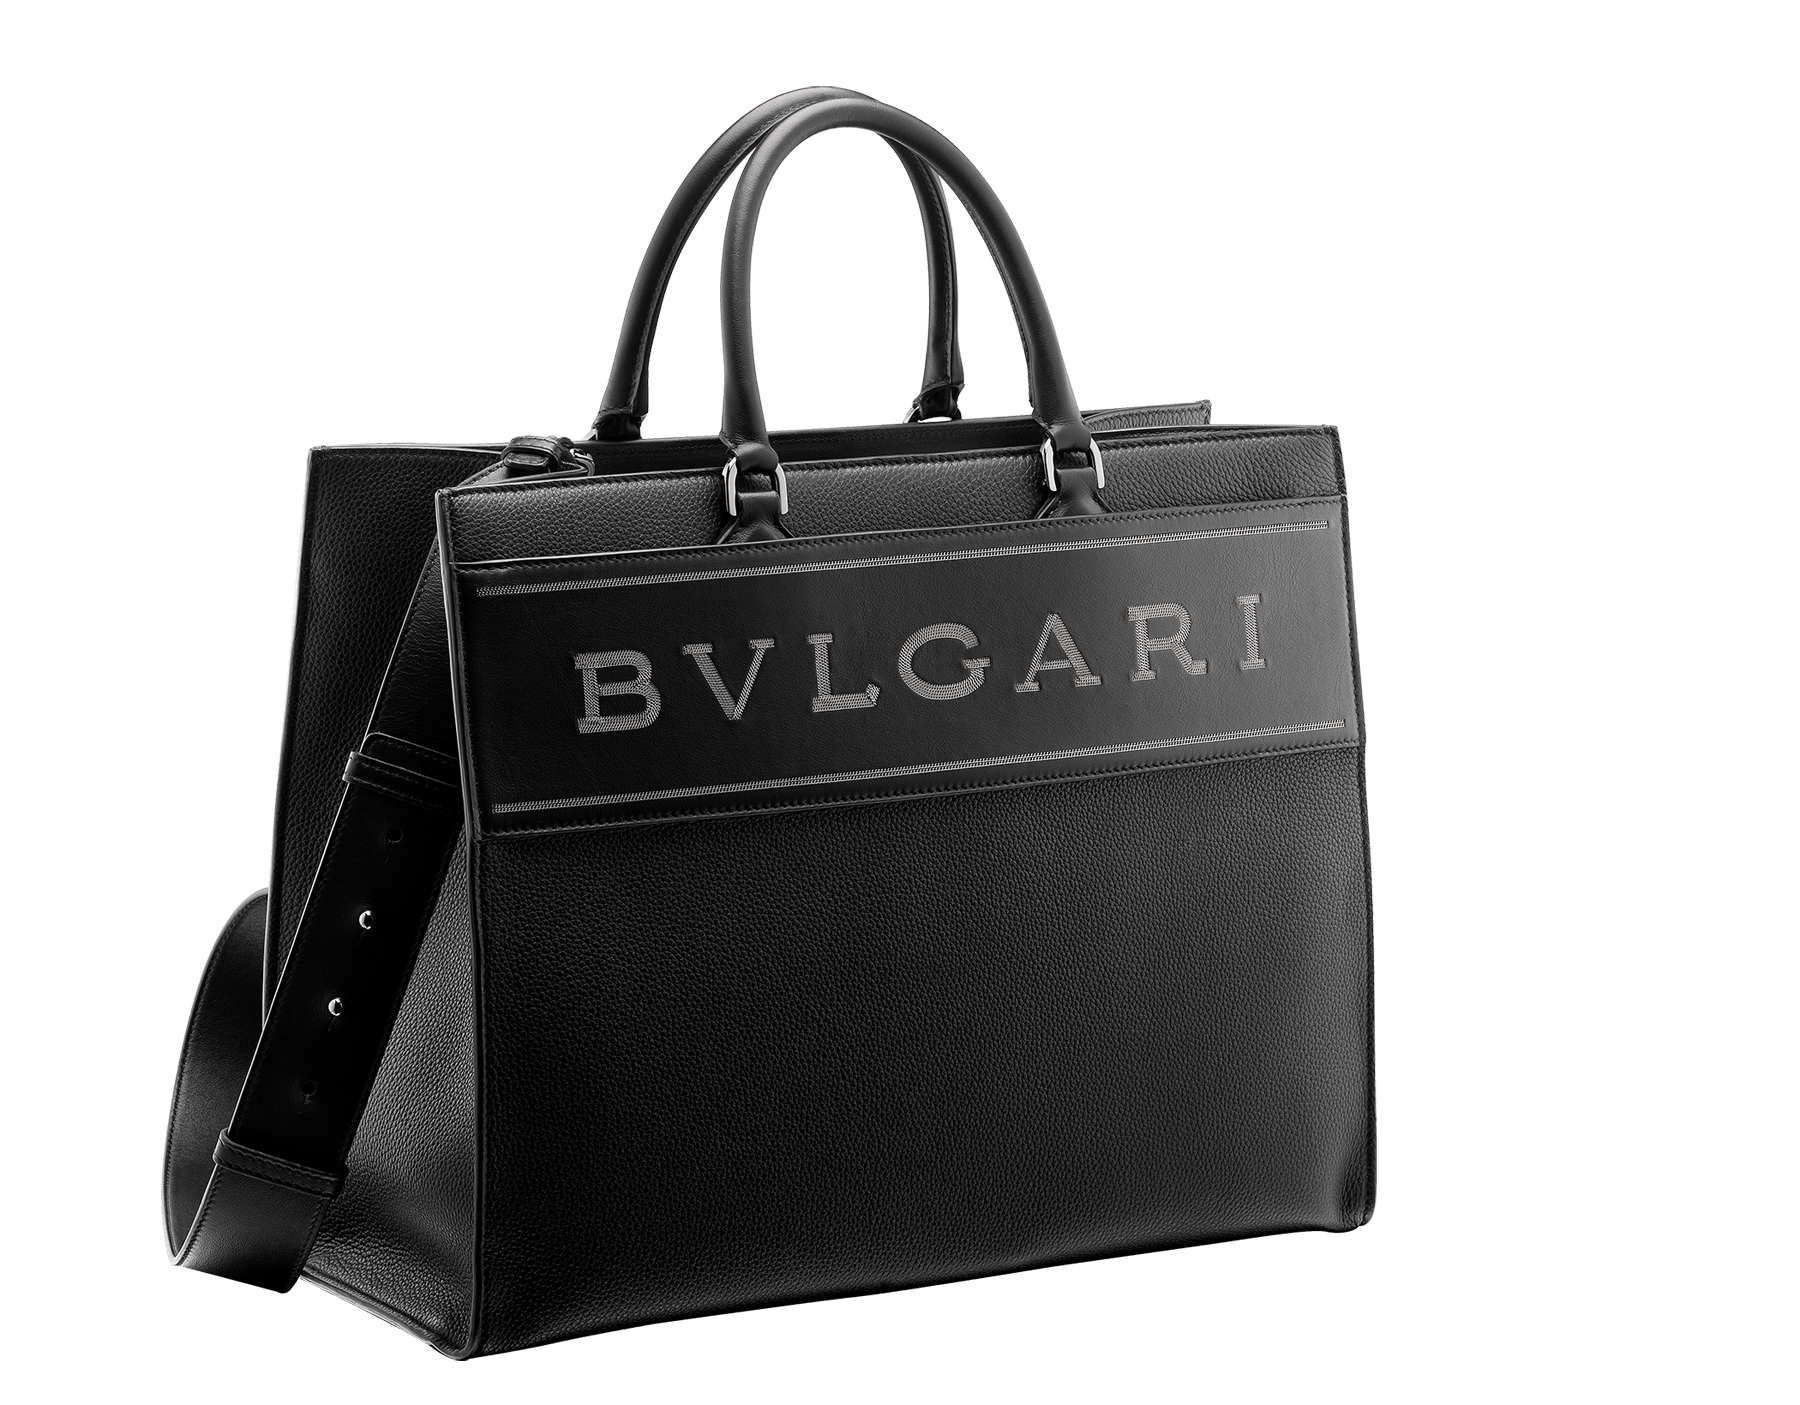 """Bvlgari Logo"" large tote bag in black calf leather, with black grosgrain inner lining. Bvlgari logo featured with dark ruthenium-plated brass chain inserts on the black calf leather. BVL-1160 image 2"